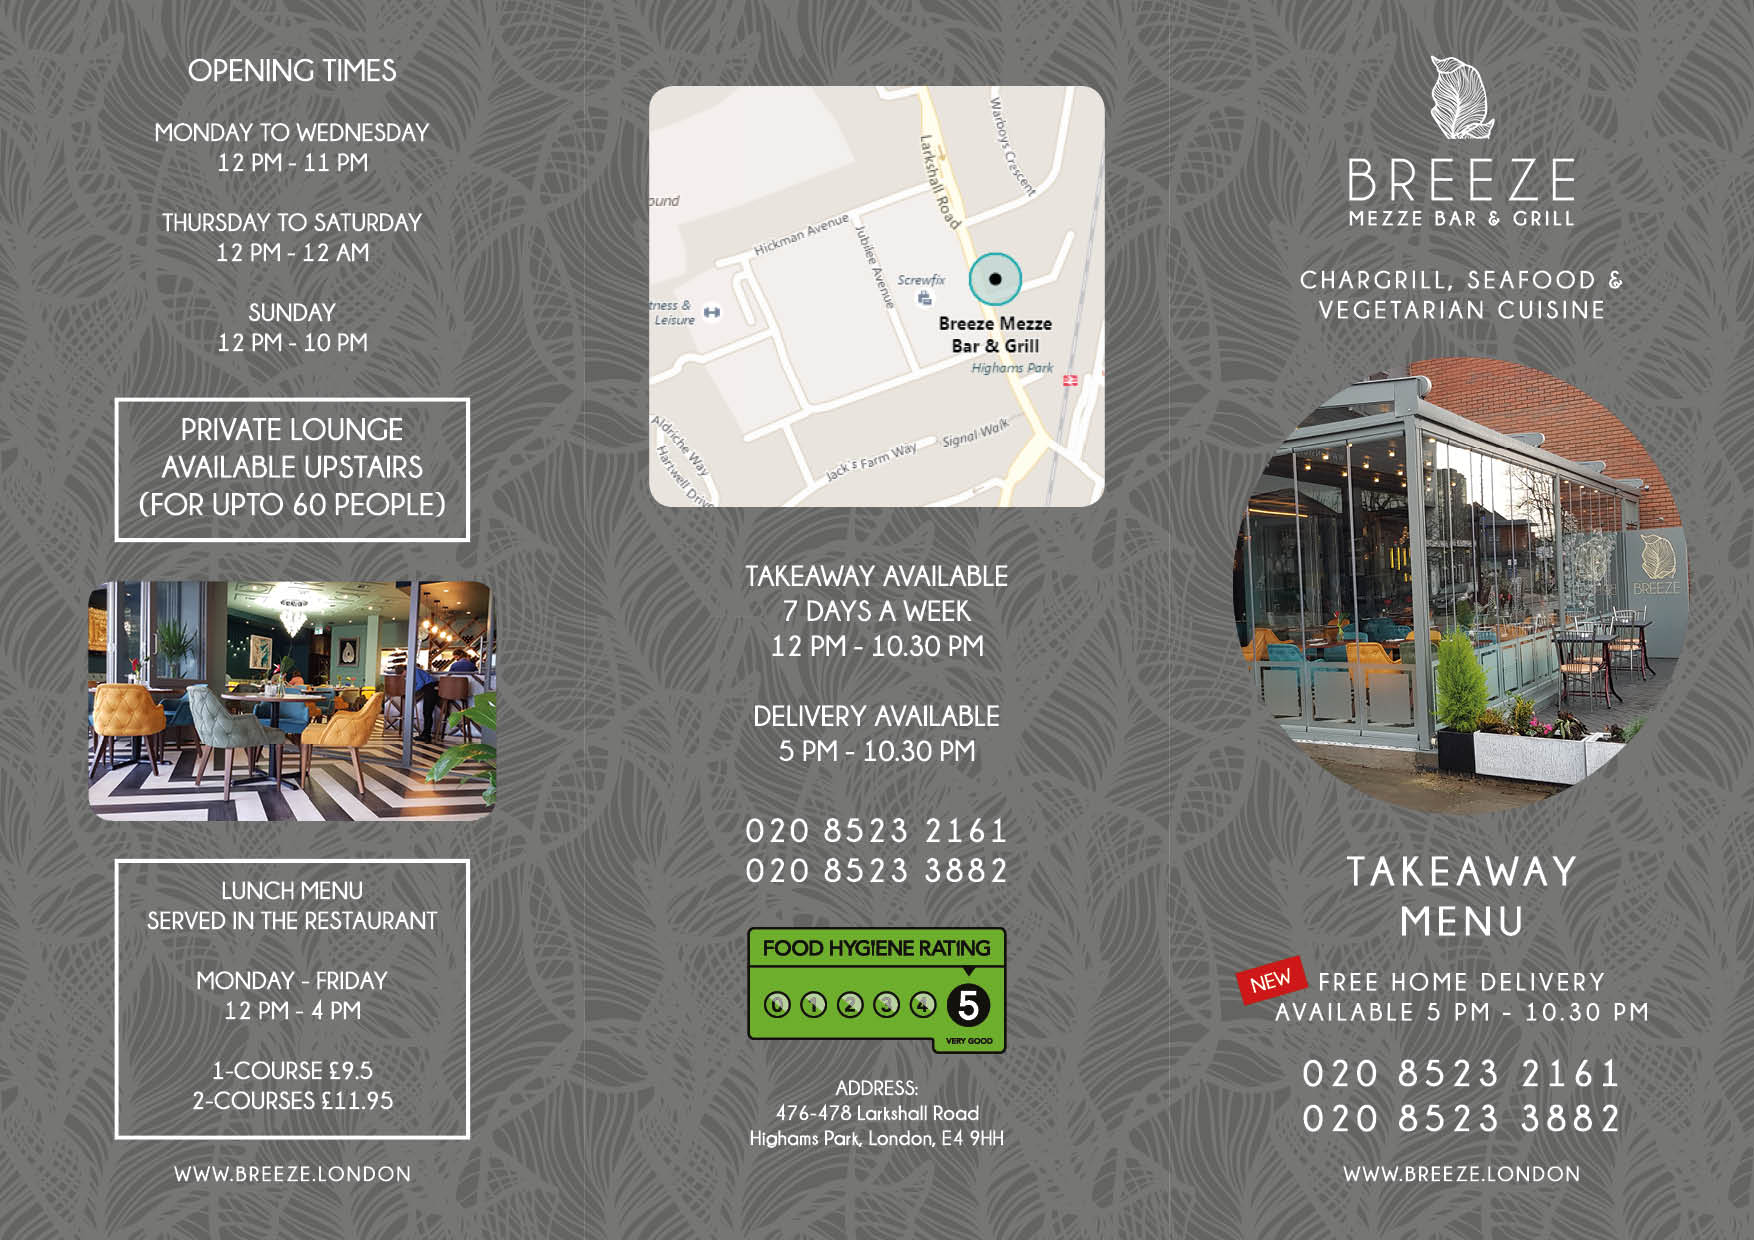 Breeze Restaurant London Highams Park Takeaway Menu (November 2018)